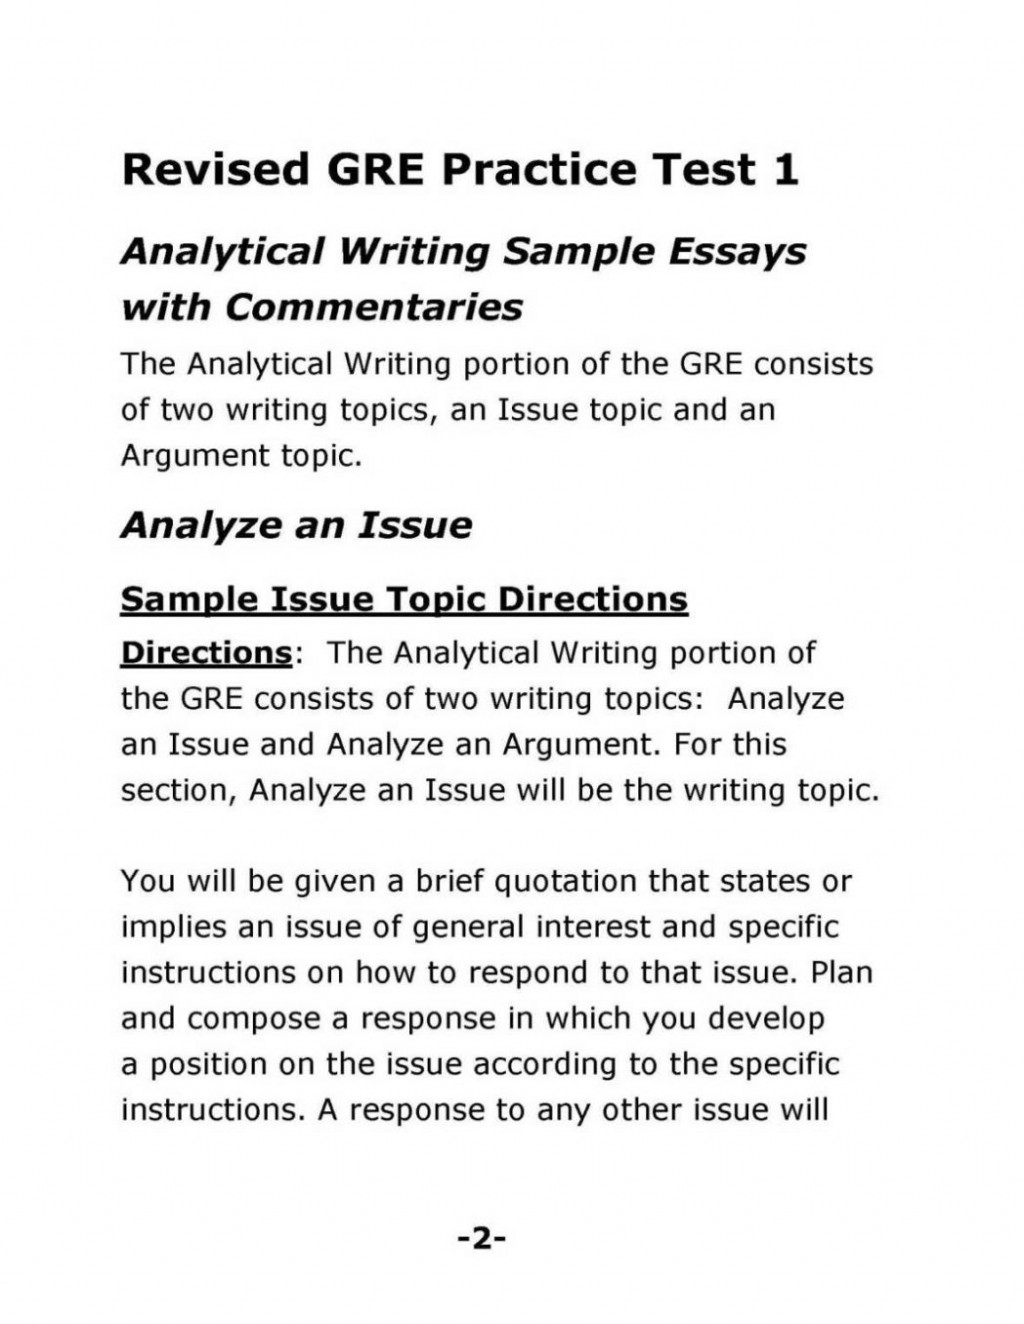 004 Gre Sample Essays Essay Example Issue Topics For Diversity Argumentative Writing Format Test Papers With Soluti Books Tips Preparation Pdf Practice Strategies Examples Formidable Awa Answers Prompts Large